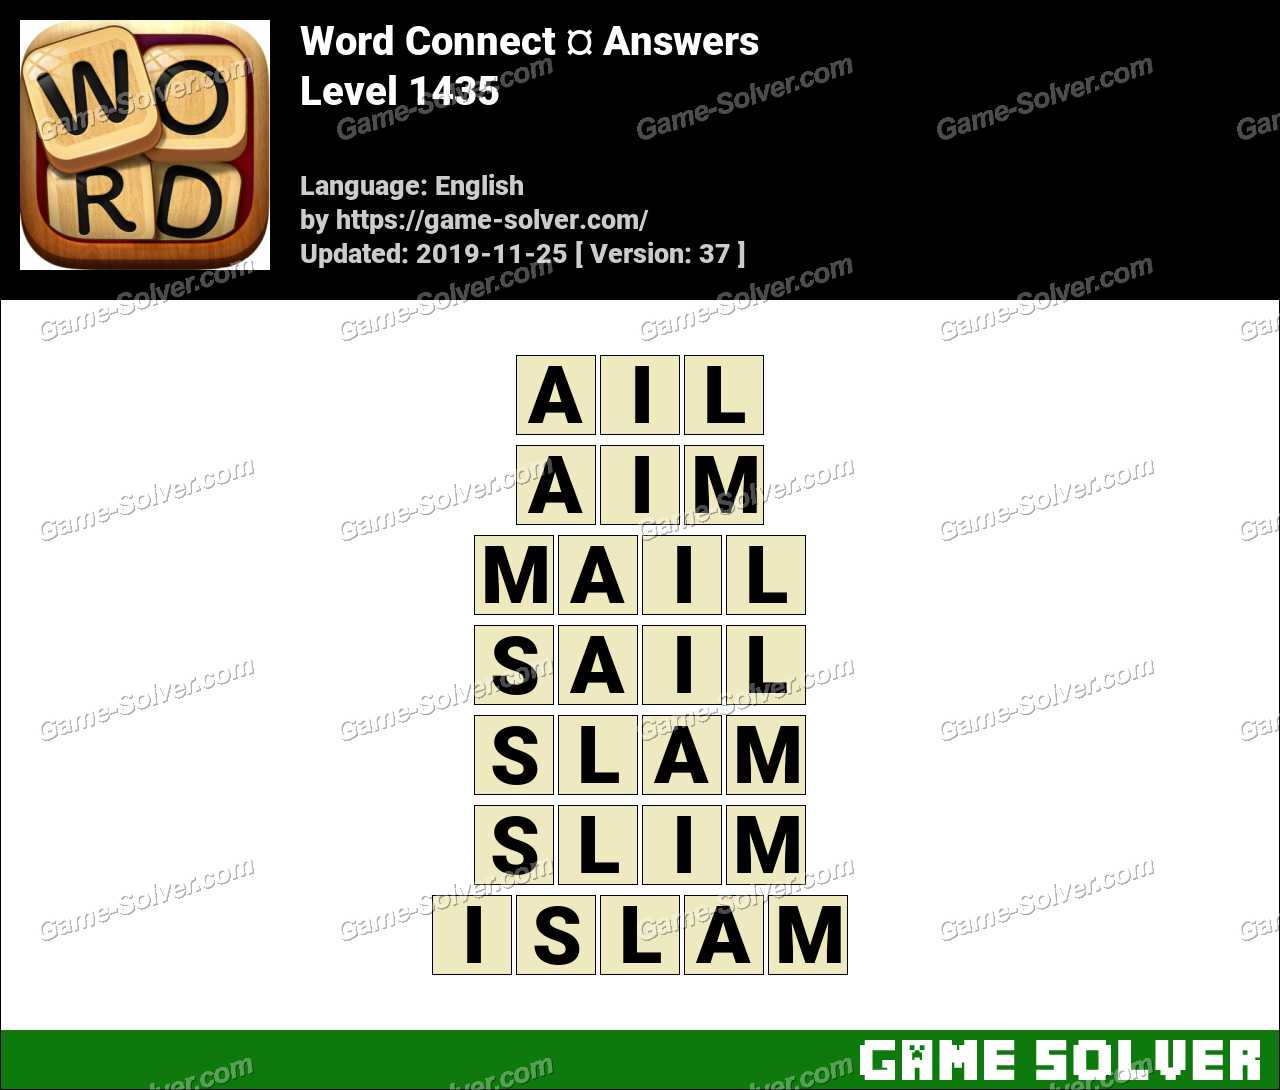 Word Connect Level 1435 Answers